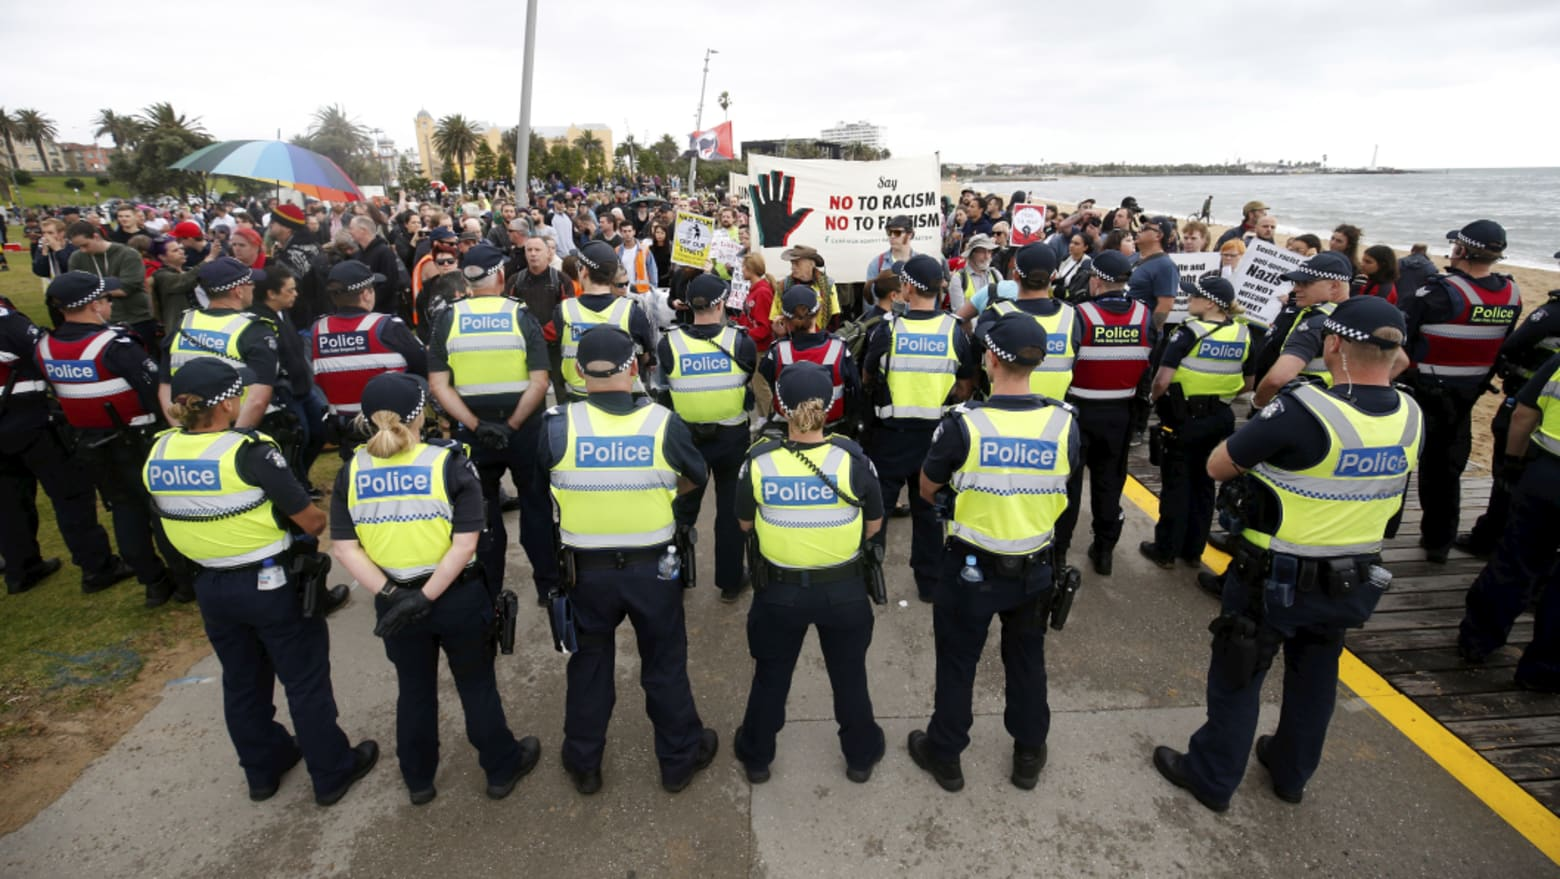 Police stand between far-right and anti-racism protesters at the St Kilda rally. Credit:Darrian Traynor